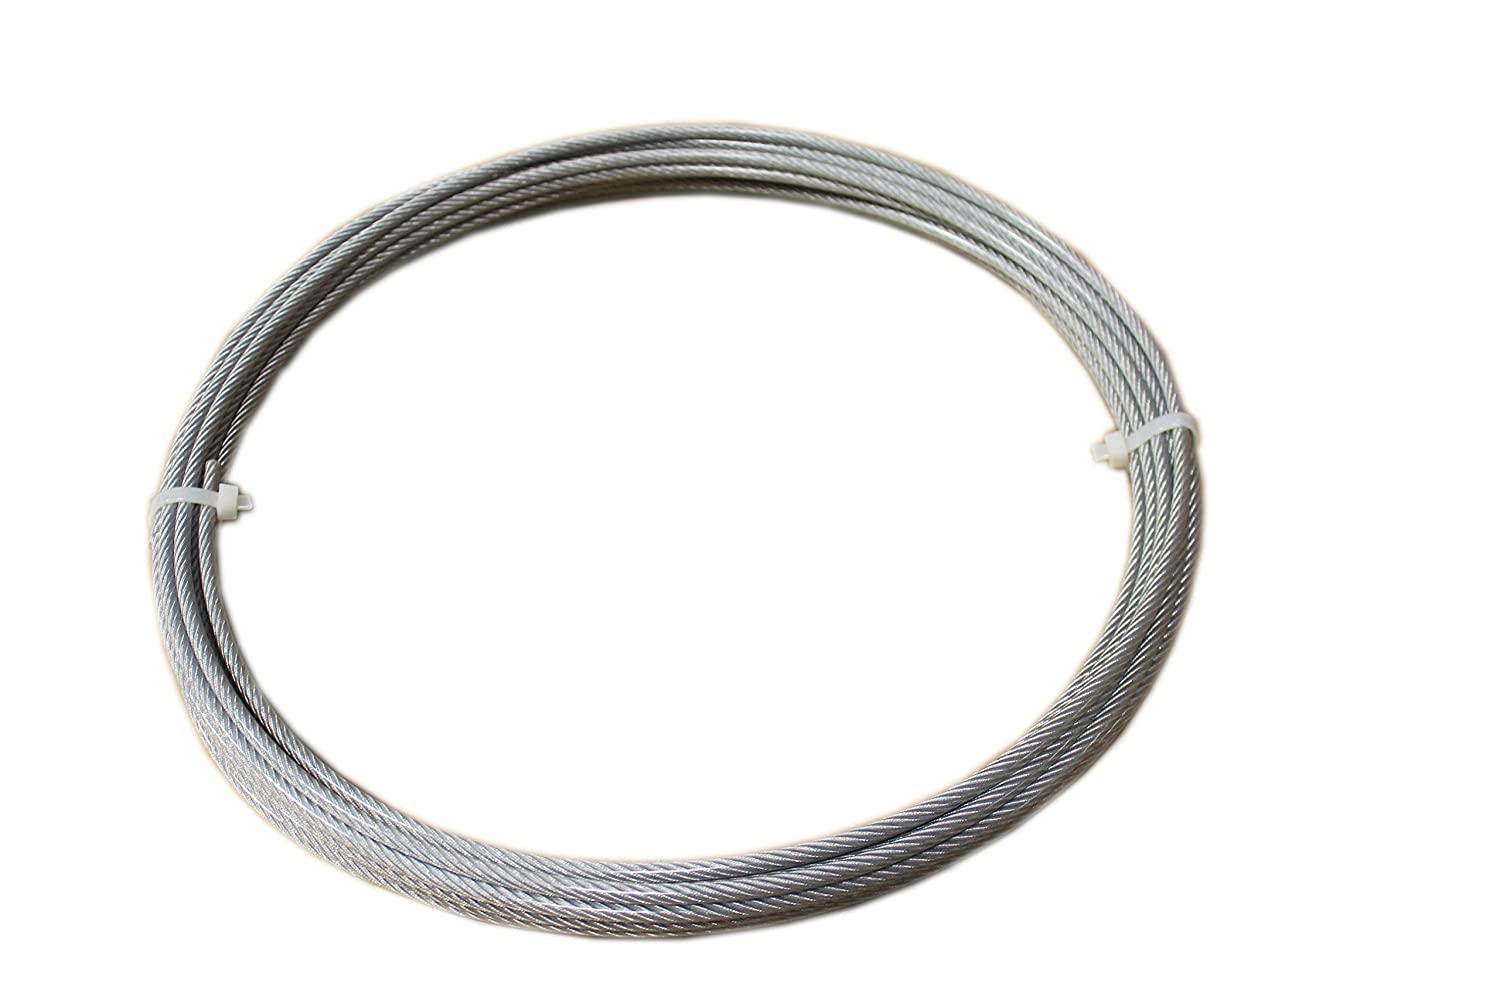 Loos Stainless Steel 302/304 Wire Rope, Vinyl Coated, 7x19 Strand ...